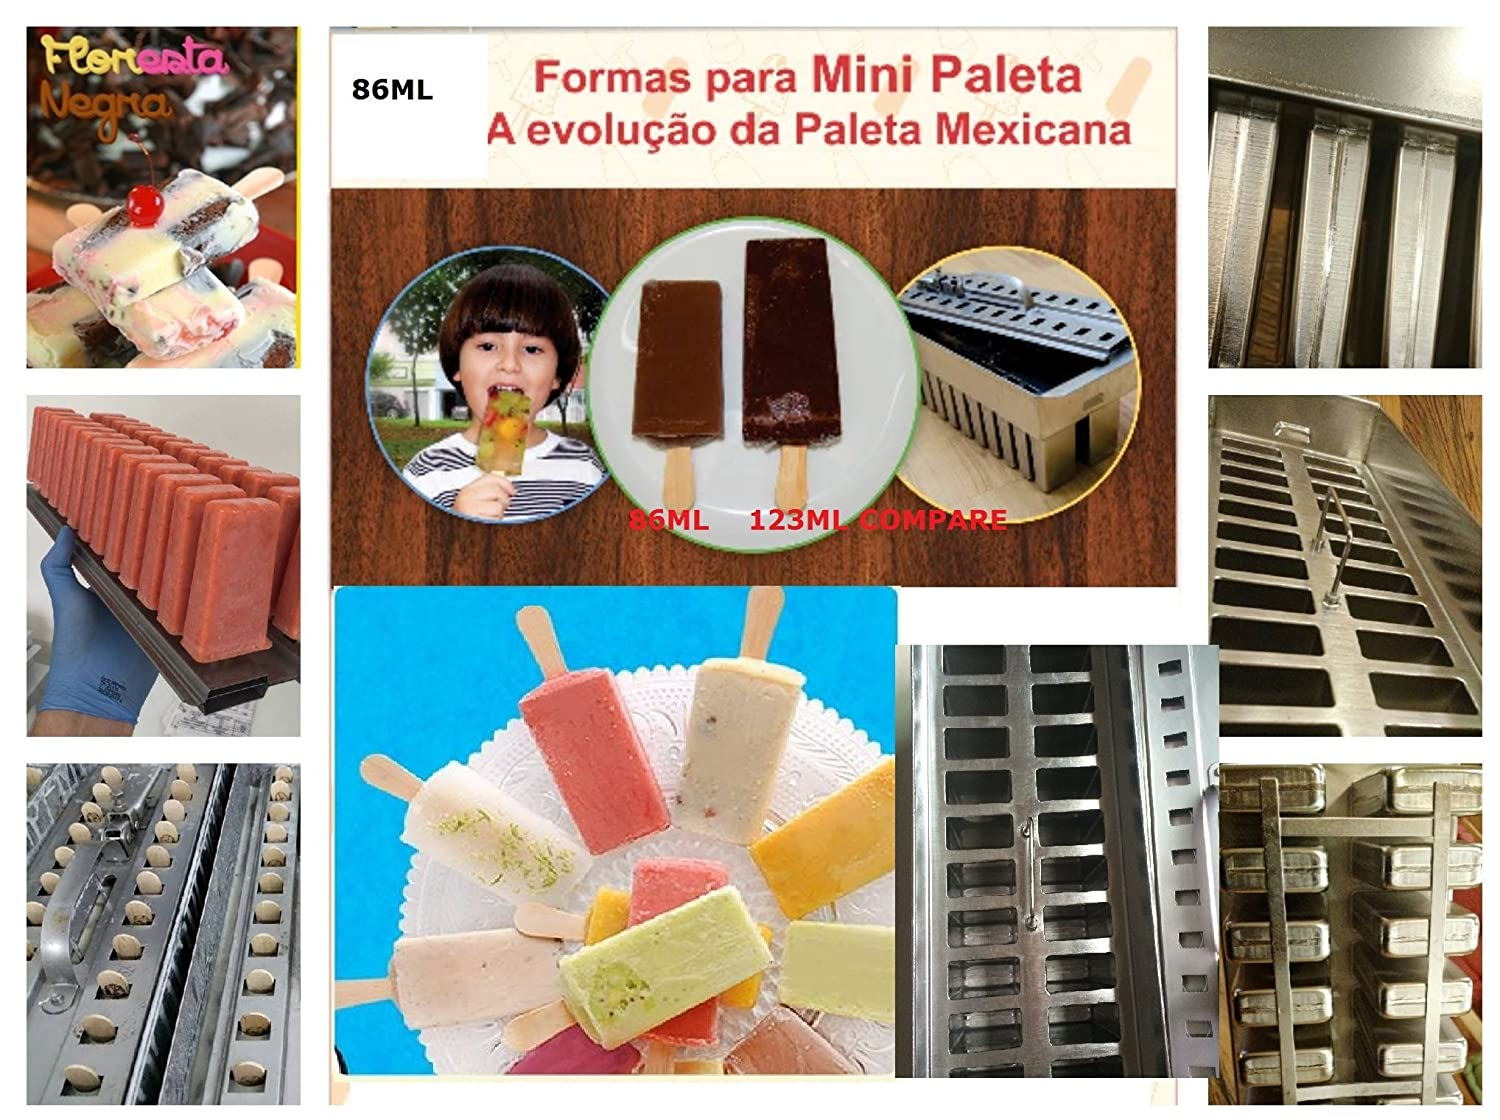 Amazon.com: Commercial Stainless Steel Popsicle Mold ice cream Mini Paleta 86ml 26mold Tray Type: Kitchen & Dining